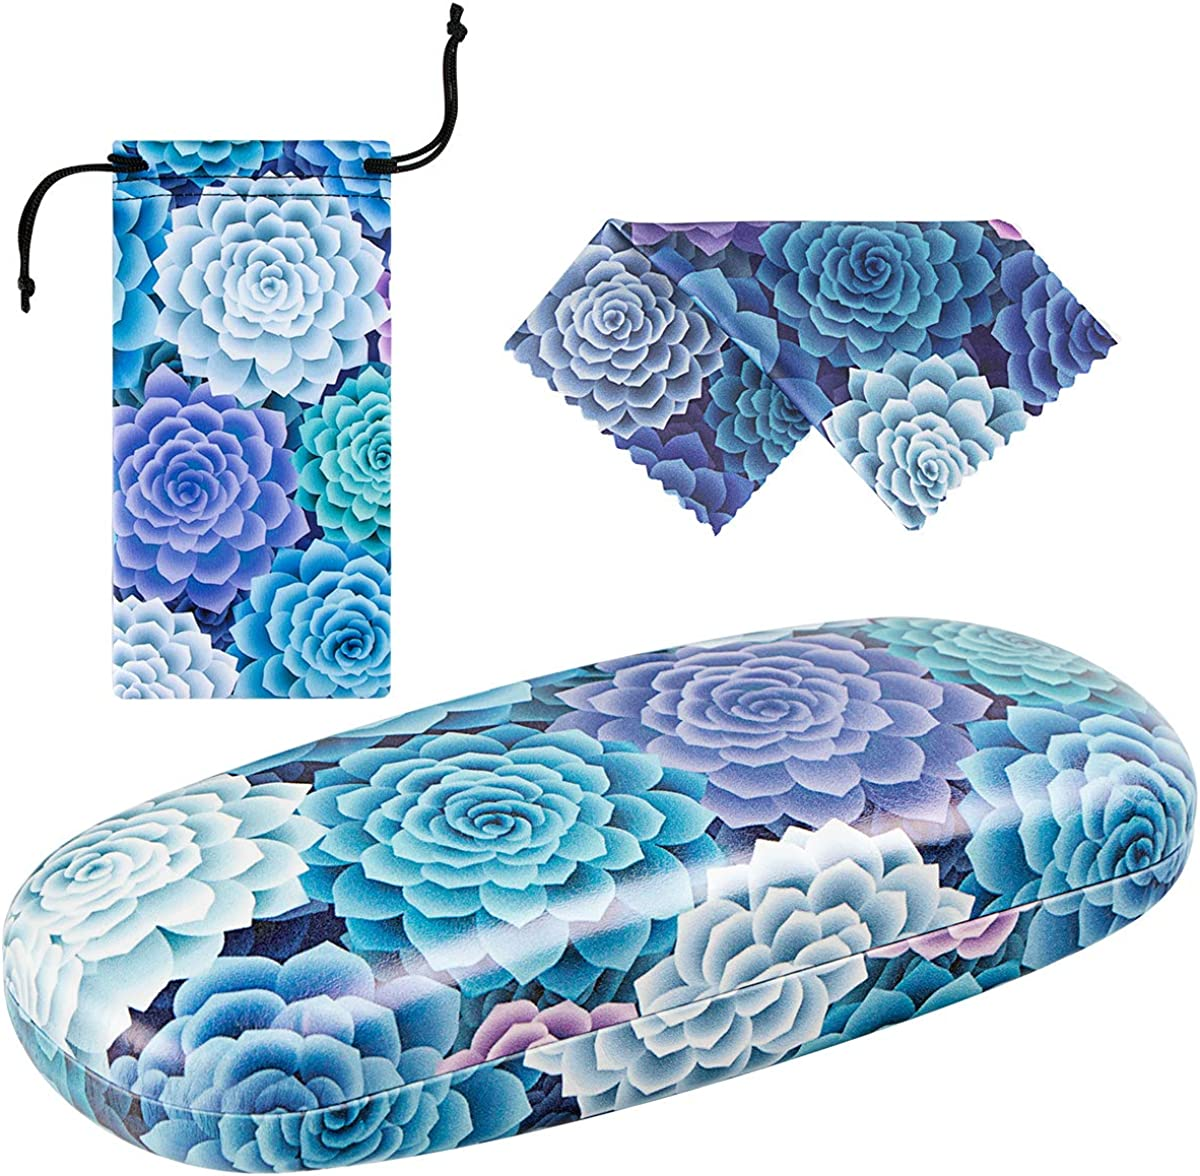 Unisex Hard Shell Eyeglasses Cases, Protective Case For Glasses with Matching Eyeglass Pouch & Cleaning Cloth